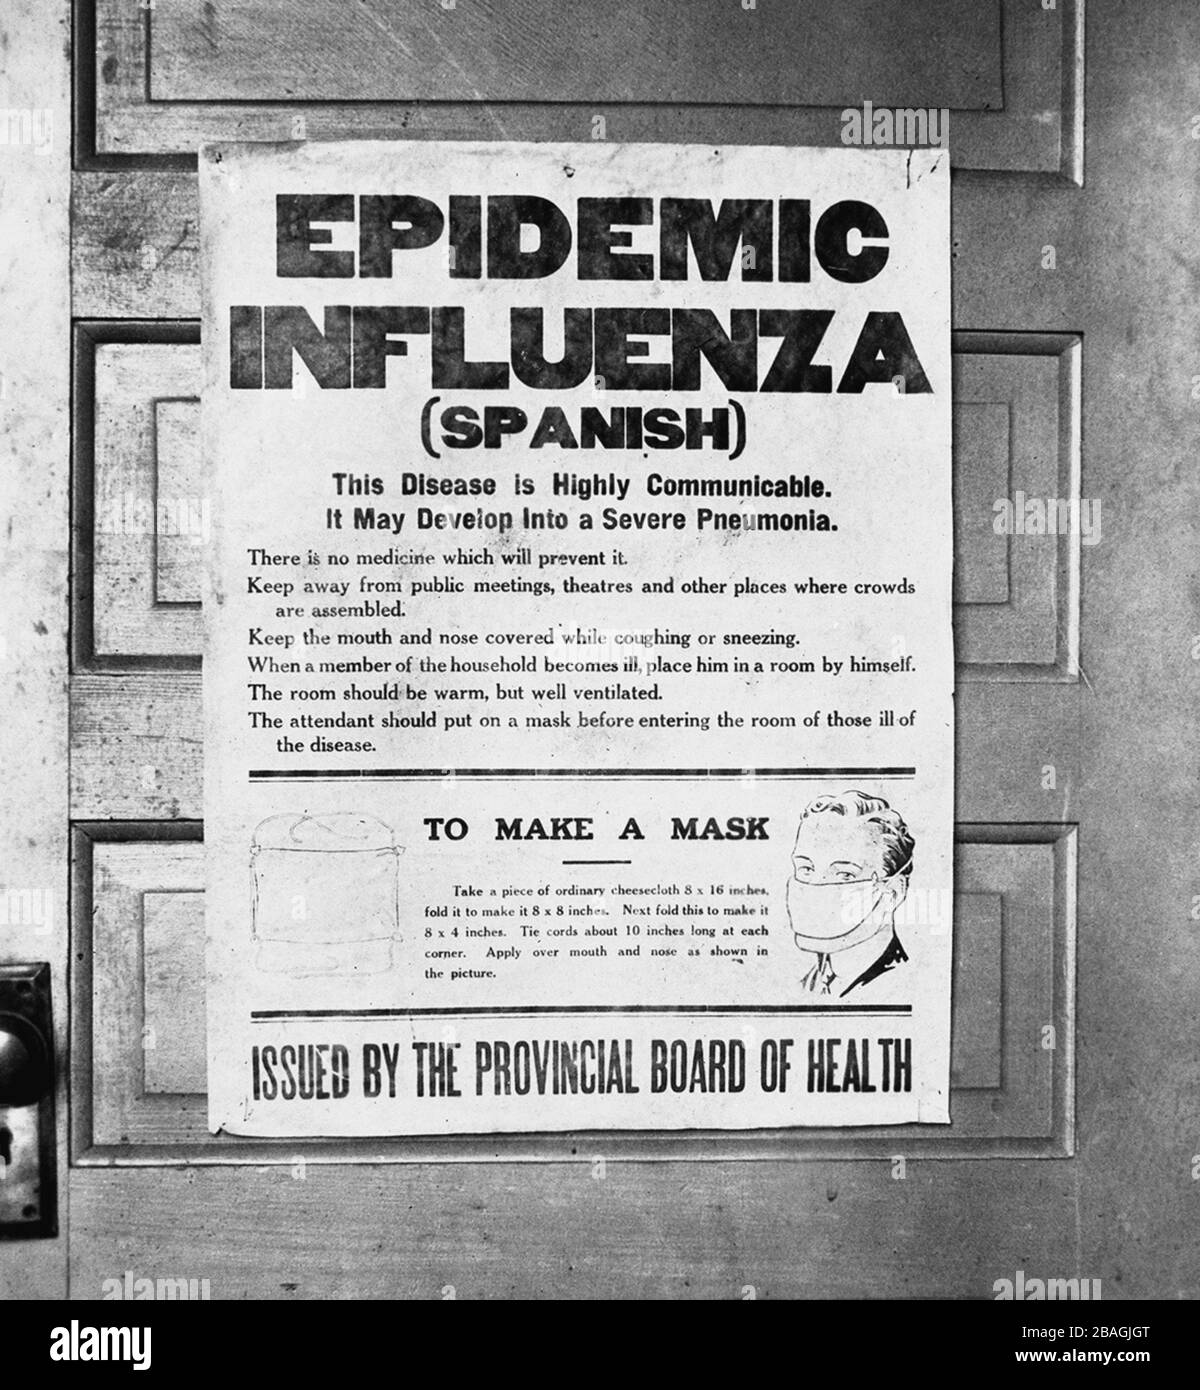 Spanish Flu poster. Poster issued by Alberta's Provincial Board of Health alerting the public to the 1918 influenza epidemic. The poster gives information on the Spanish flu and instructions on how to make a mask. Stock Photo